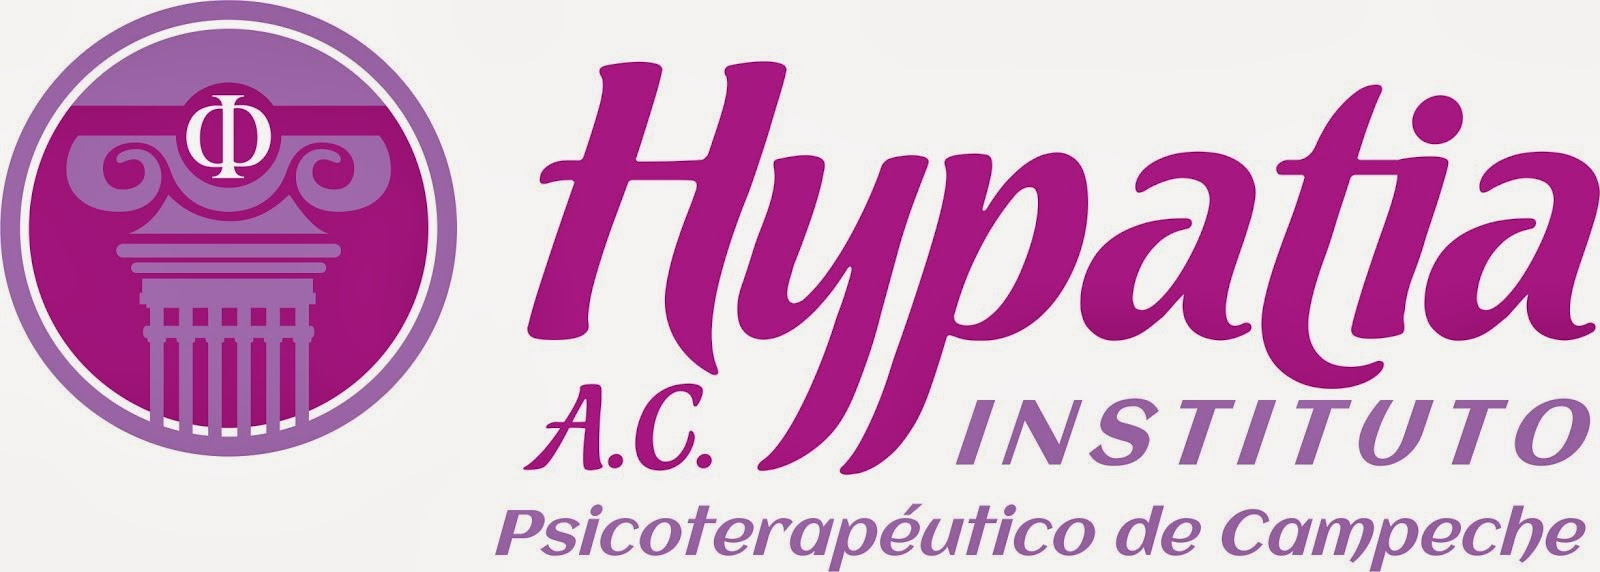 EL BLOG DE INSTITUTO HYPATIA